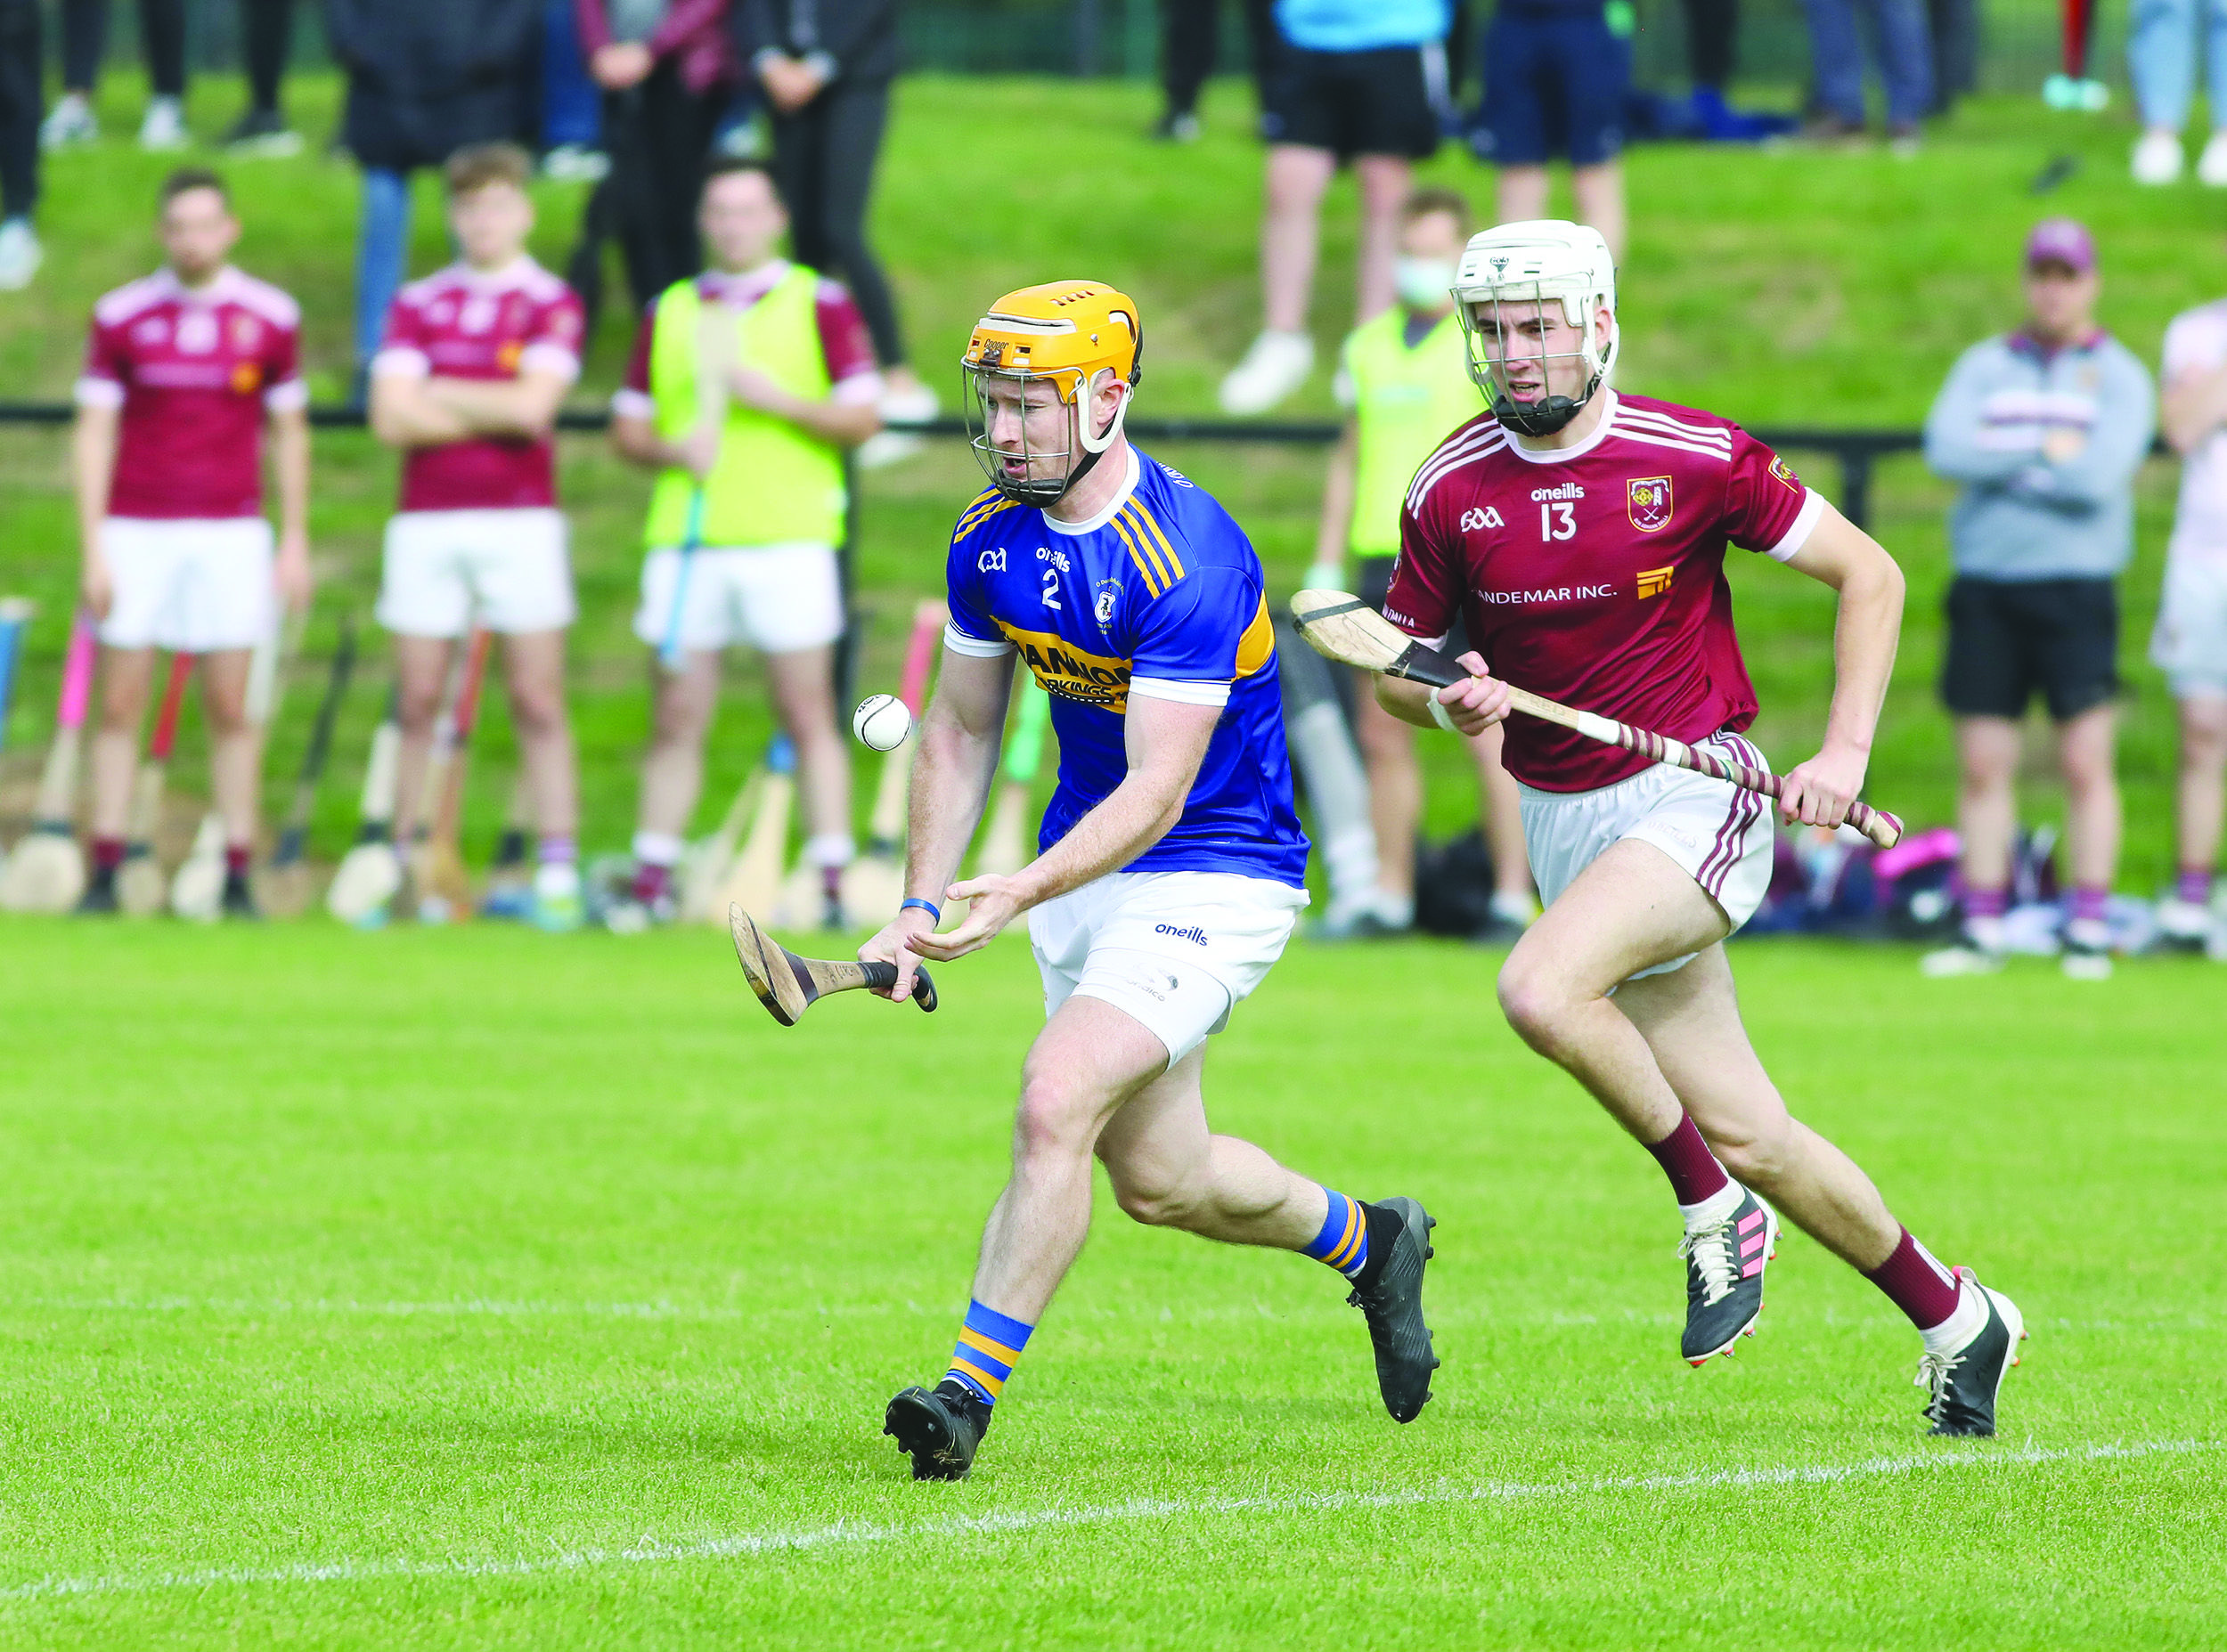 Rossa corrner back Ciaran Orchin turns 29 on Friday, but his only forcus is Sunday's Antrim Senior Hurling Championship final against Dunloy